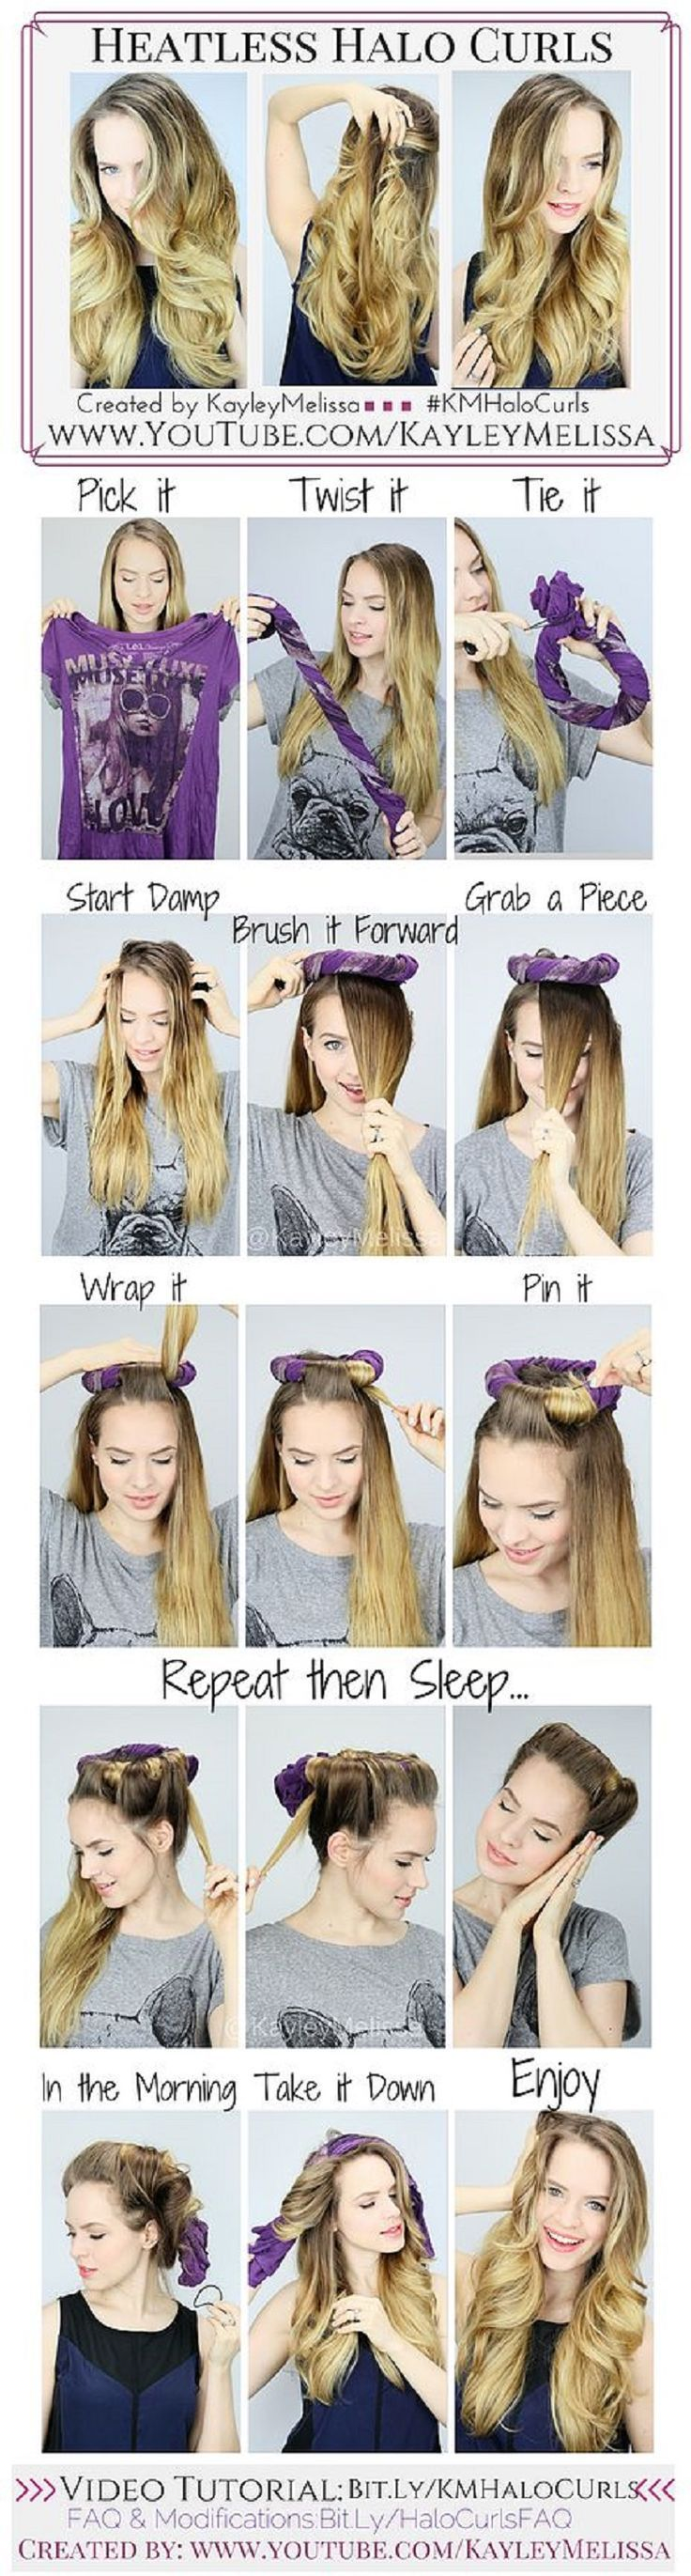 15 Super-Easy Hairstyles for Lazy Girls with Tutorials {hair}